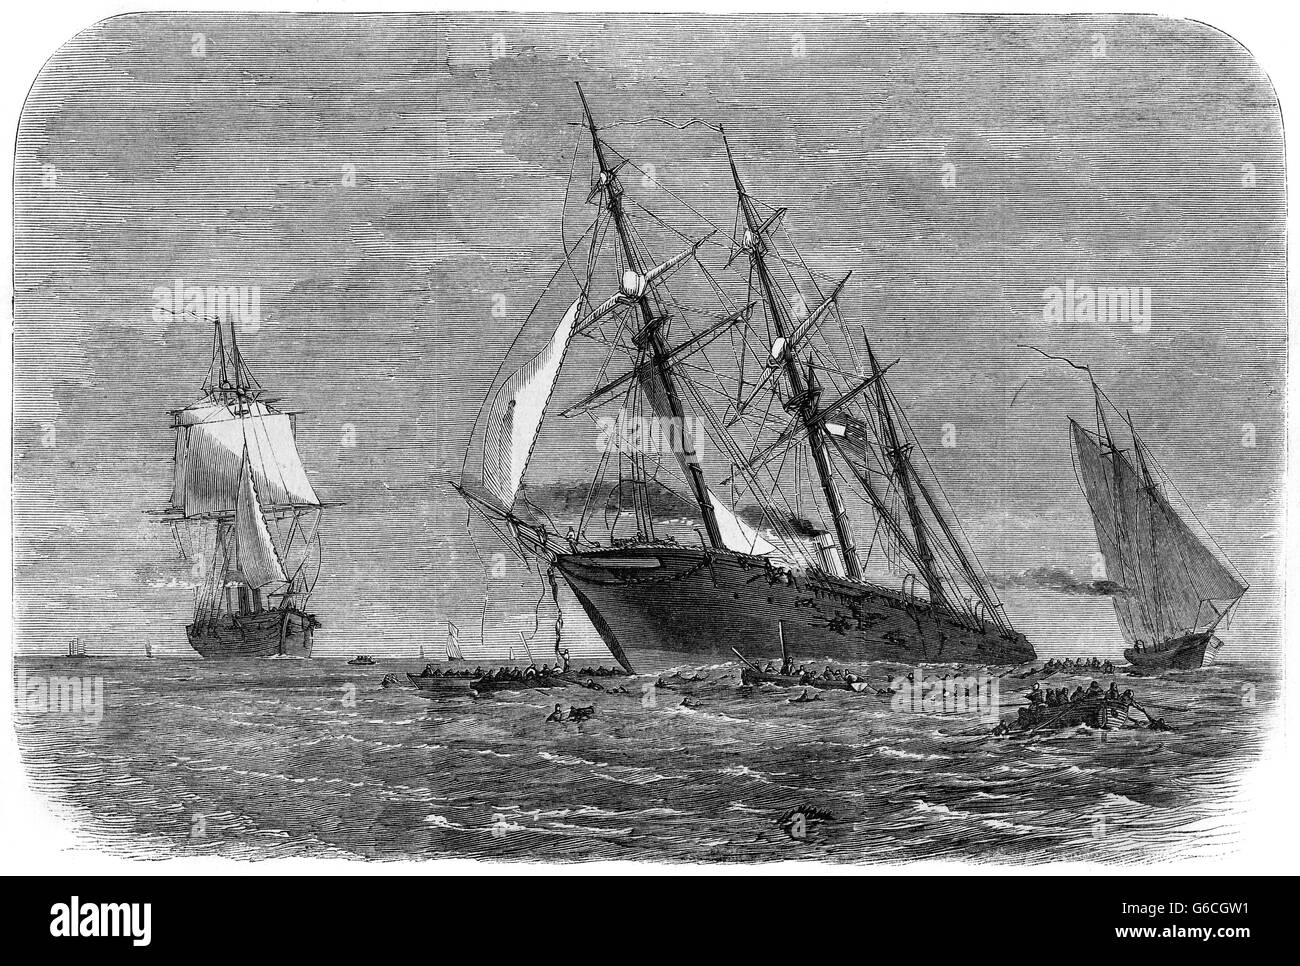 1860s JUNE 1864 UNION SHIP THE STEAMER KEARSARGE SINKS THE PIRATE ALABAMA OFF THE COAST OF CHERBOURG FRANCE - Stock Image